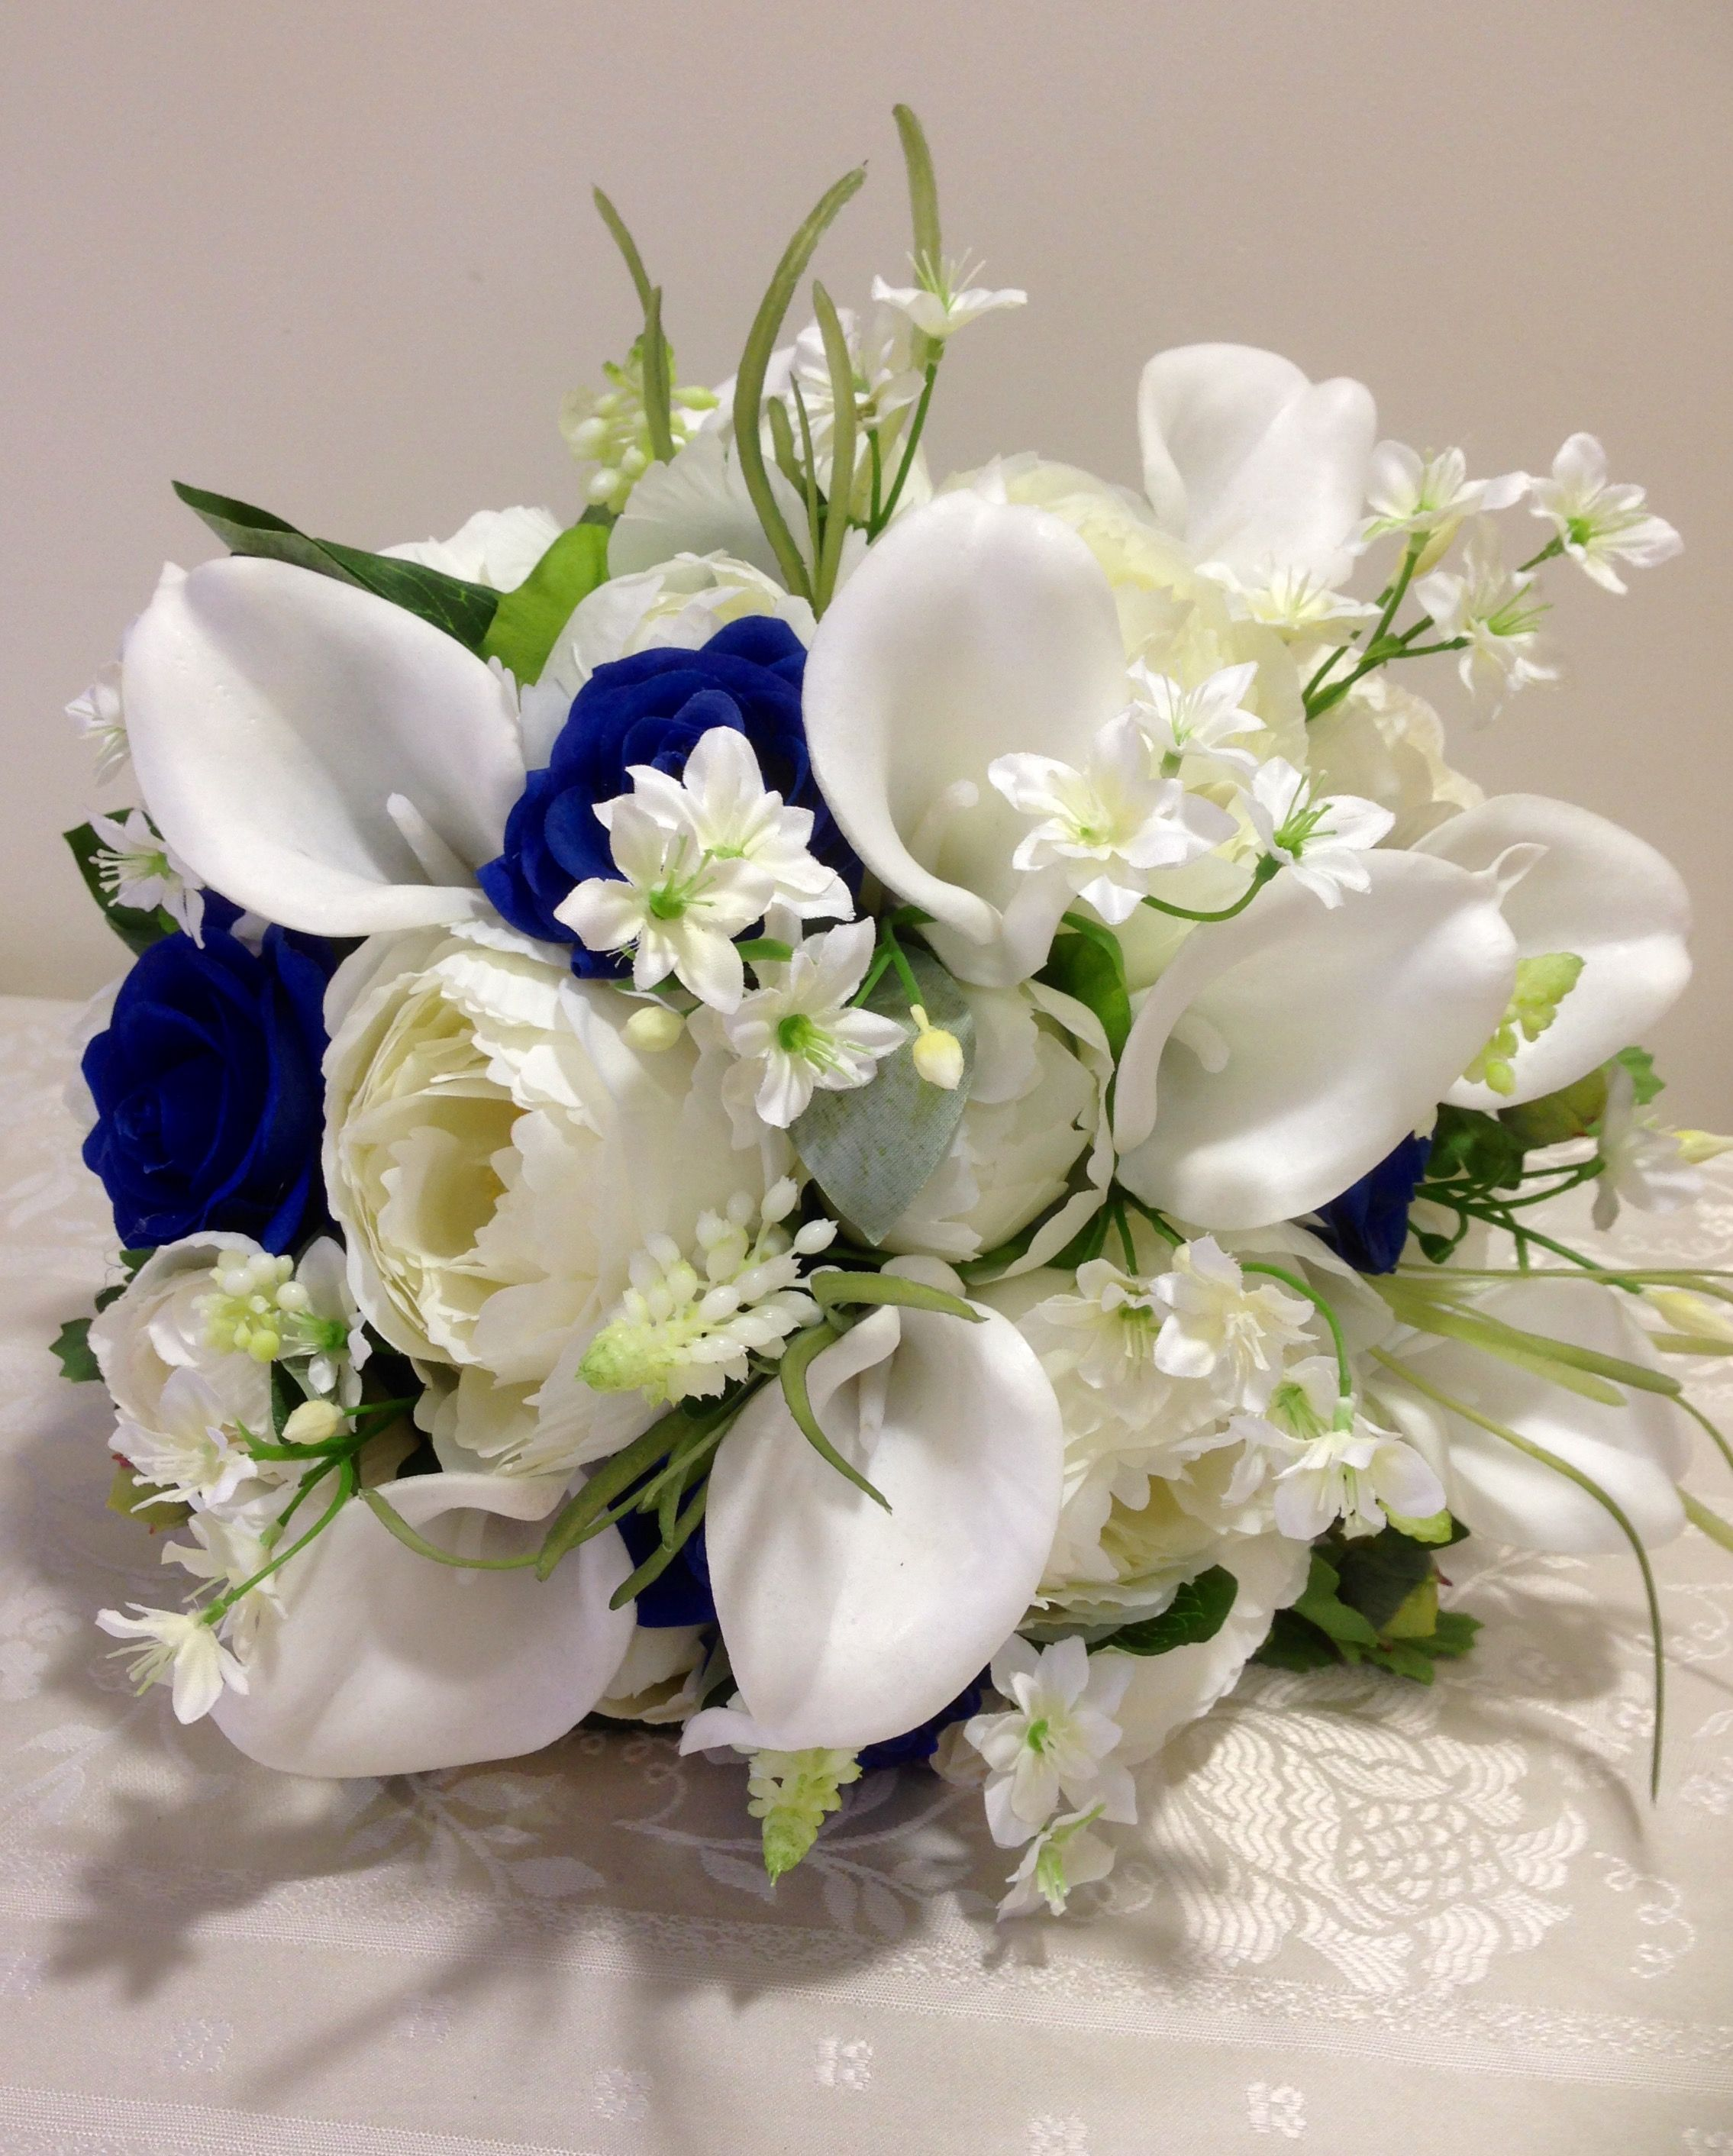 The Elegant Calla Lily For Your Wedding Calla lily